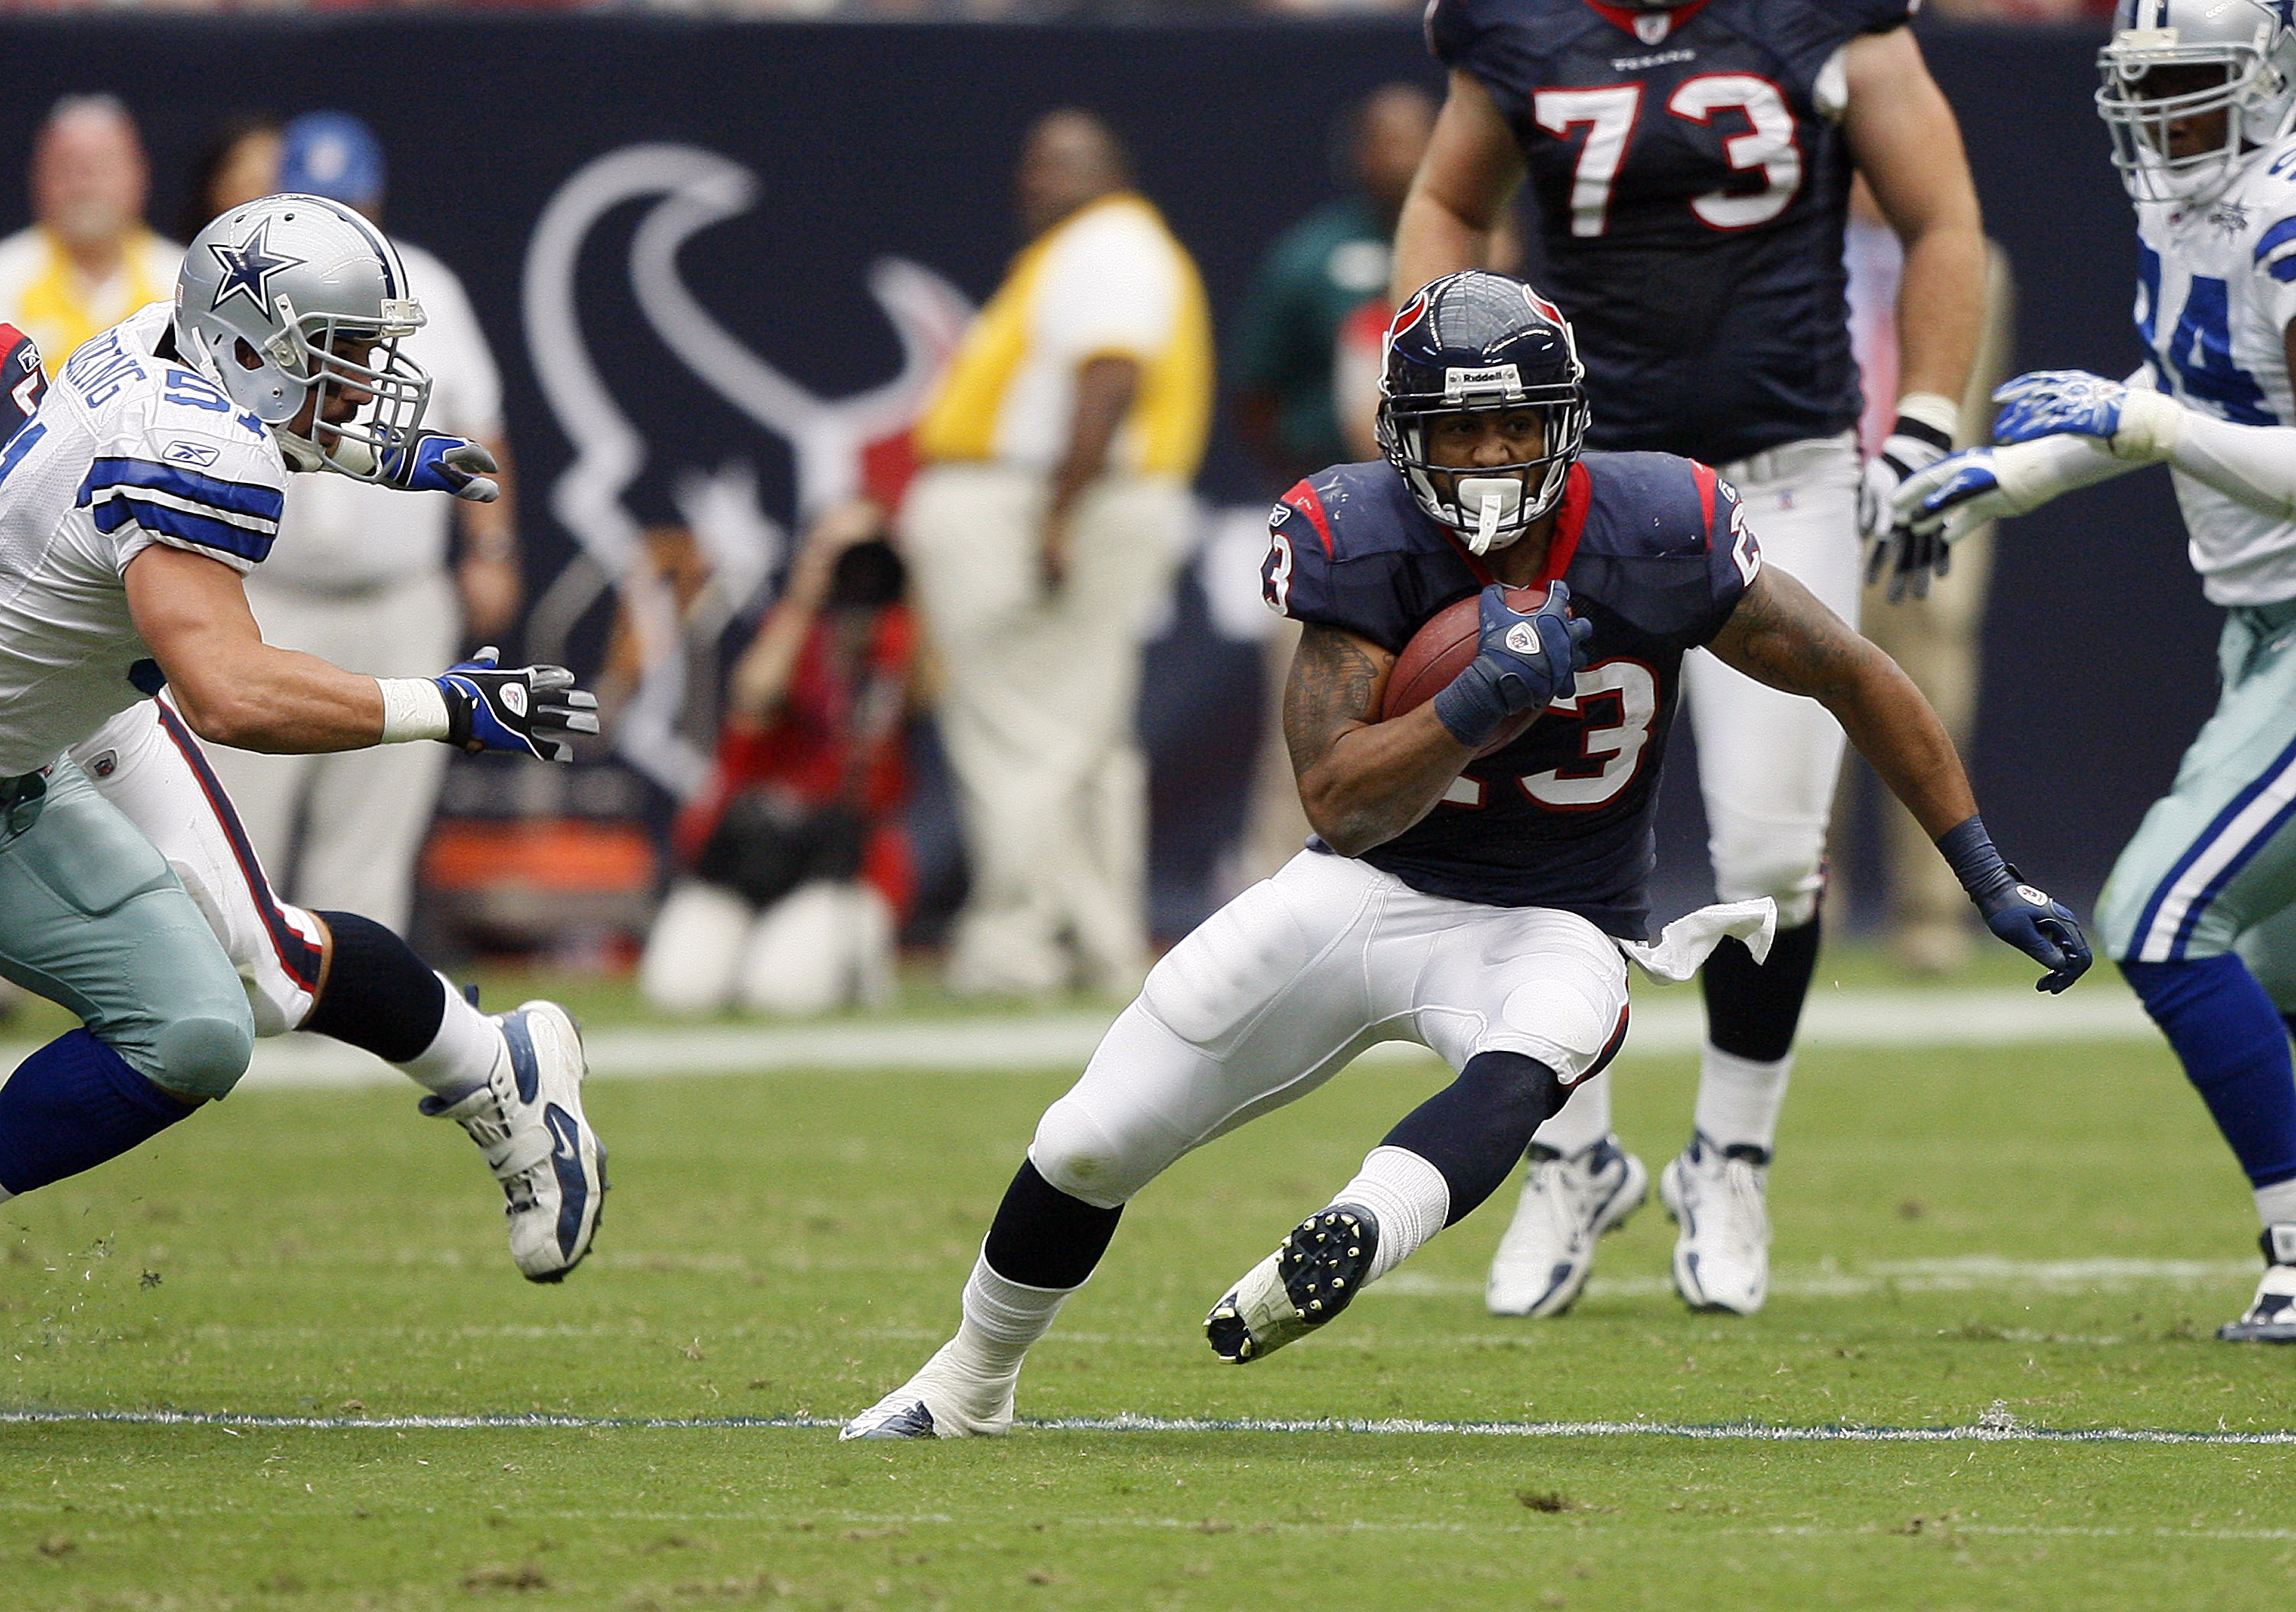 HOUSTON - SEPTEMBER 26:  Running back Arian Foster #23 of the Houston Texans rushes against the Dallas Cowboys in the second quarter at Reliant Stadium on September 26, 2010 in Houston, Texas.  (Photo by Bob Levey/Getty Images)